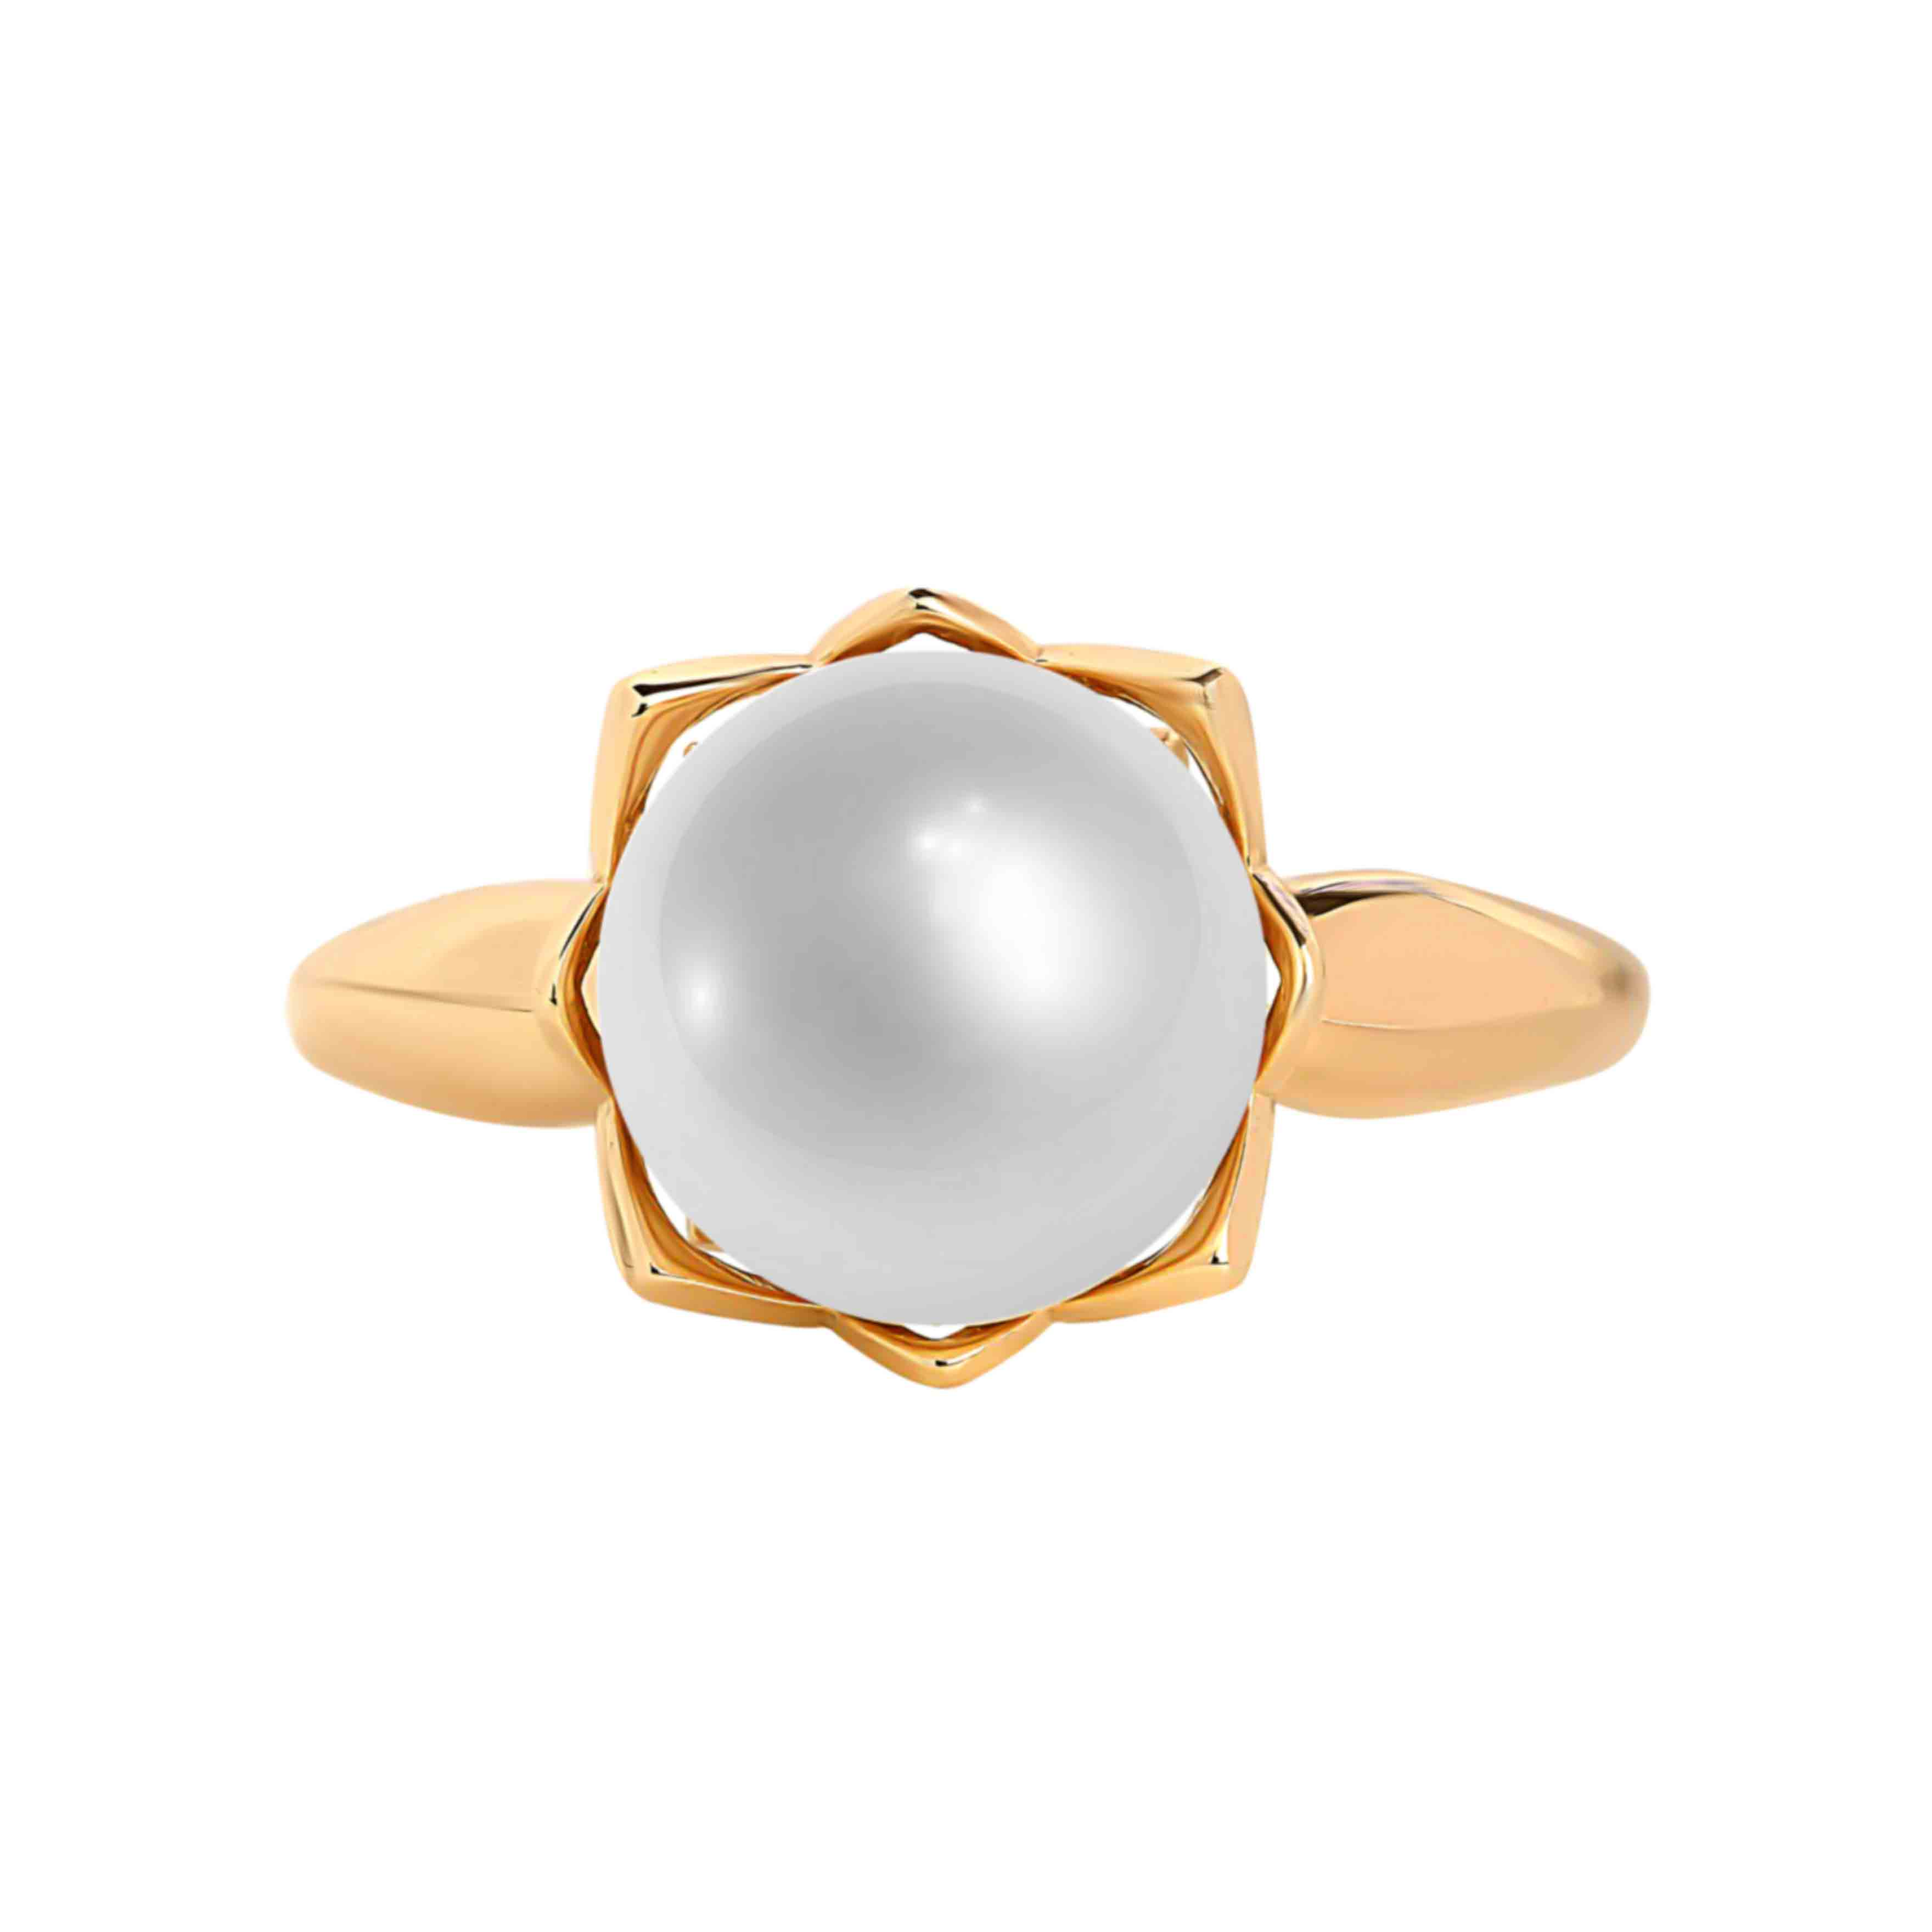 585 rose gold ring with 9mm pearl. View 2